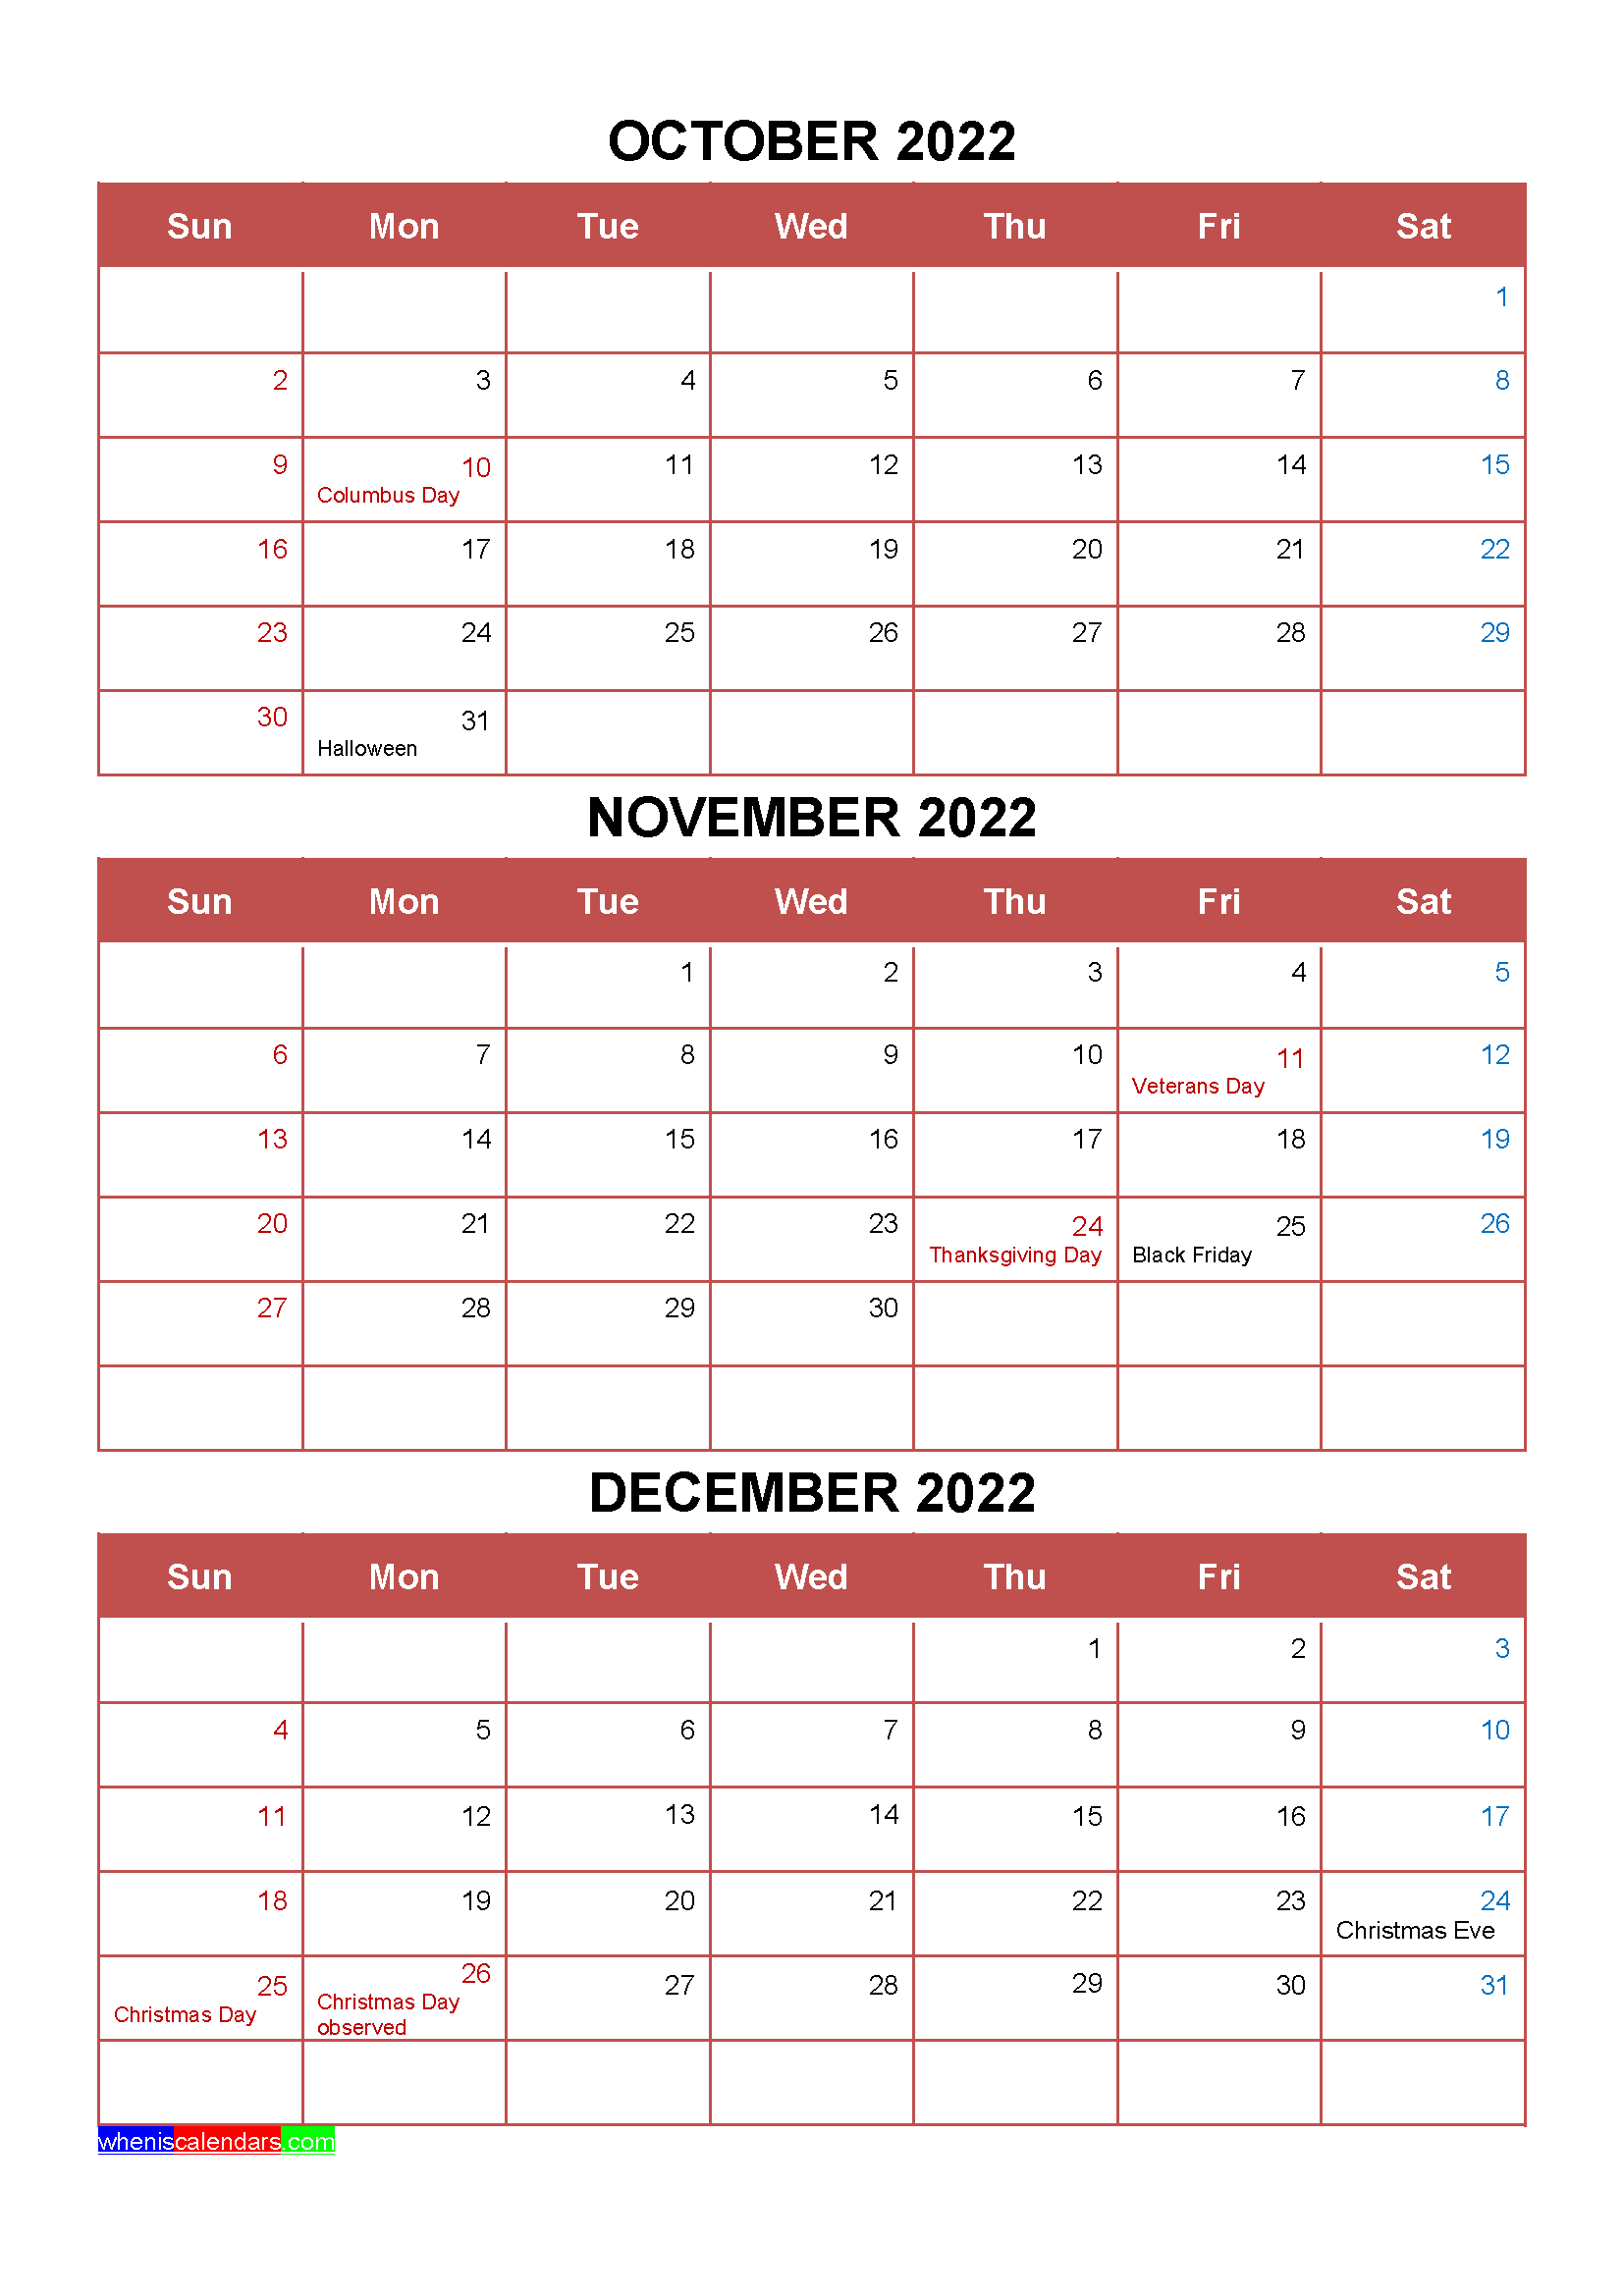 Free October November December 2022 Calendar With Holidays Four Quarters Calendar Template Free Printable Calendar Templates Calendar Printables